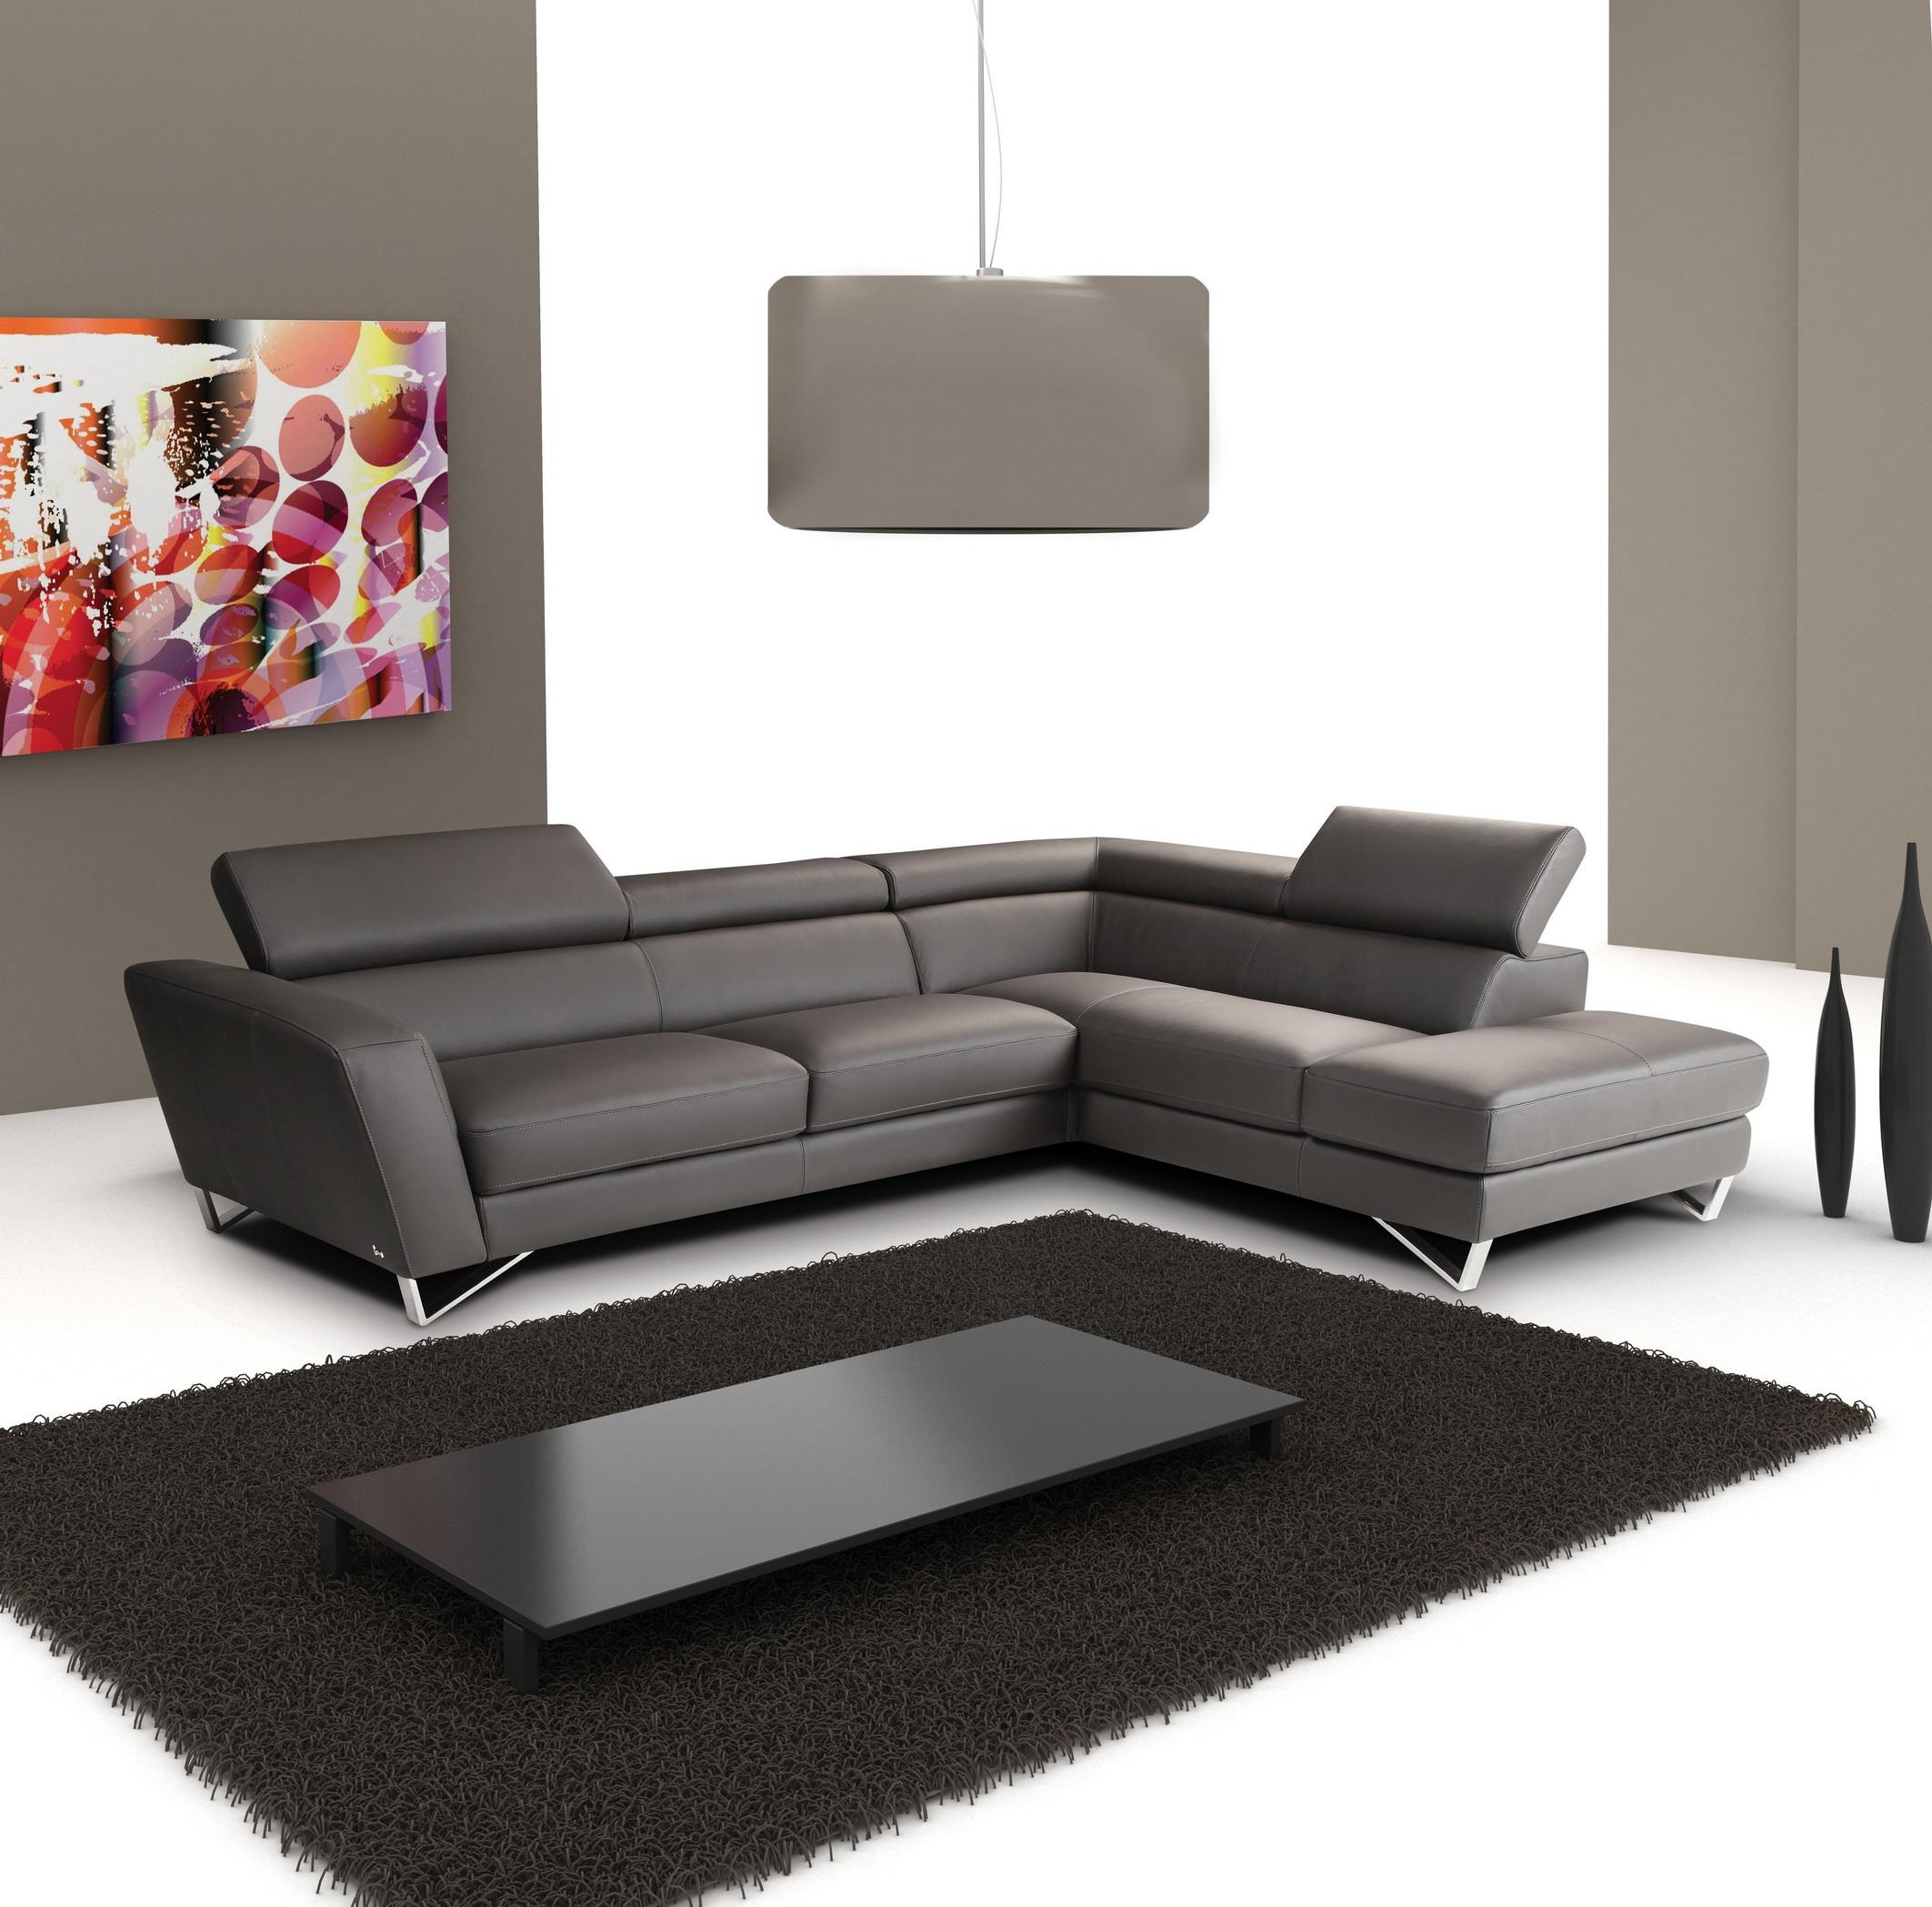 For A Leather Sectional Sofa With A Mix Of Modern And Classic Within Small Scale Leather Sectional Sofas (Image 5 of 20)